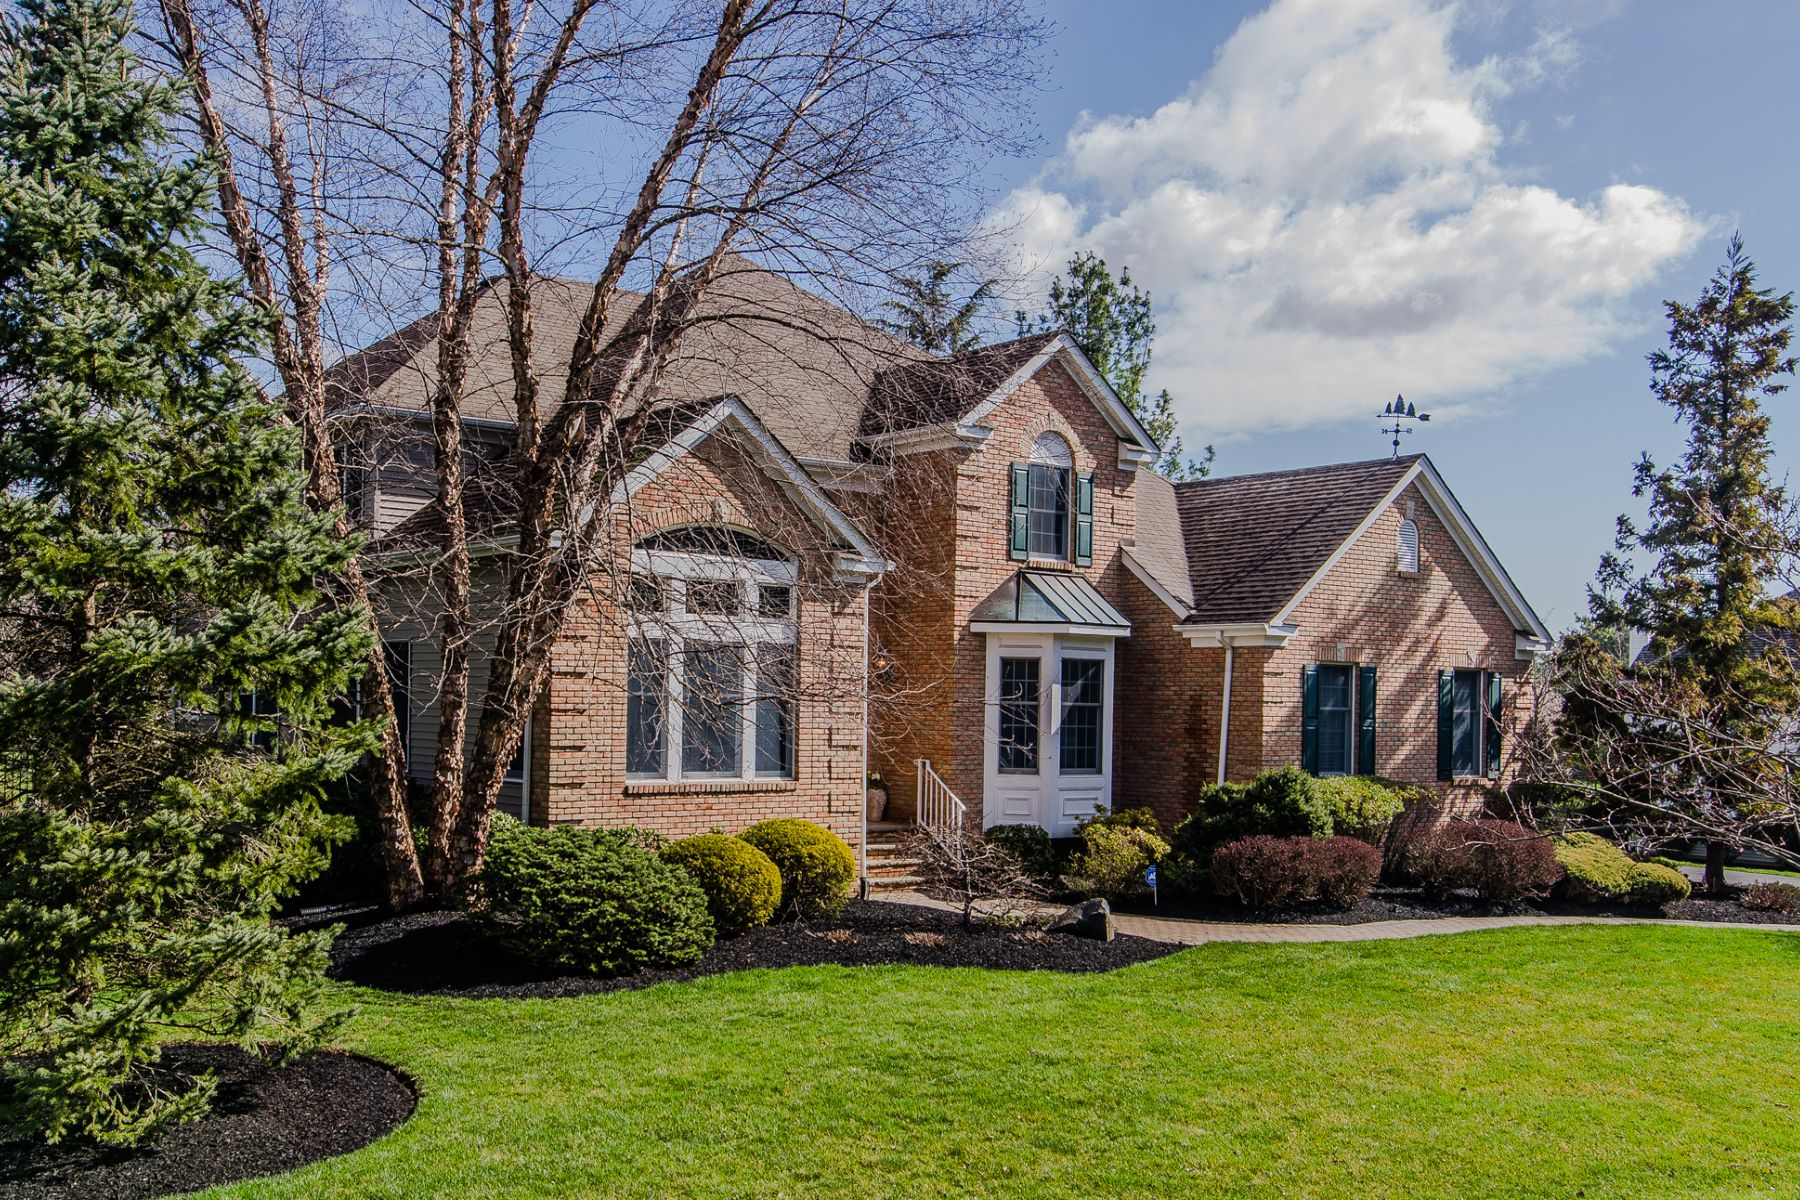 Single Family Home for Sale at Resort-Style Living in West Windsor 79 Conover Road West Windsor, 08550 United States